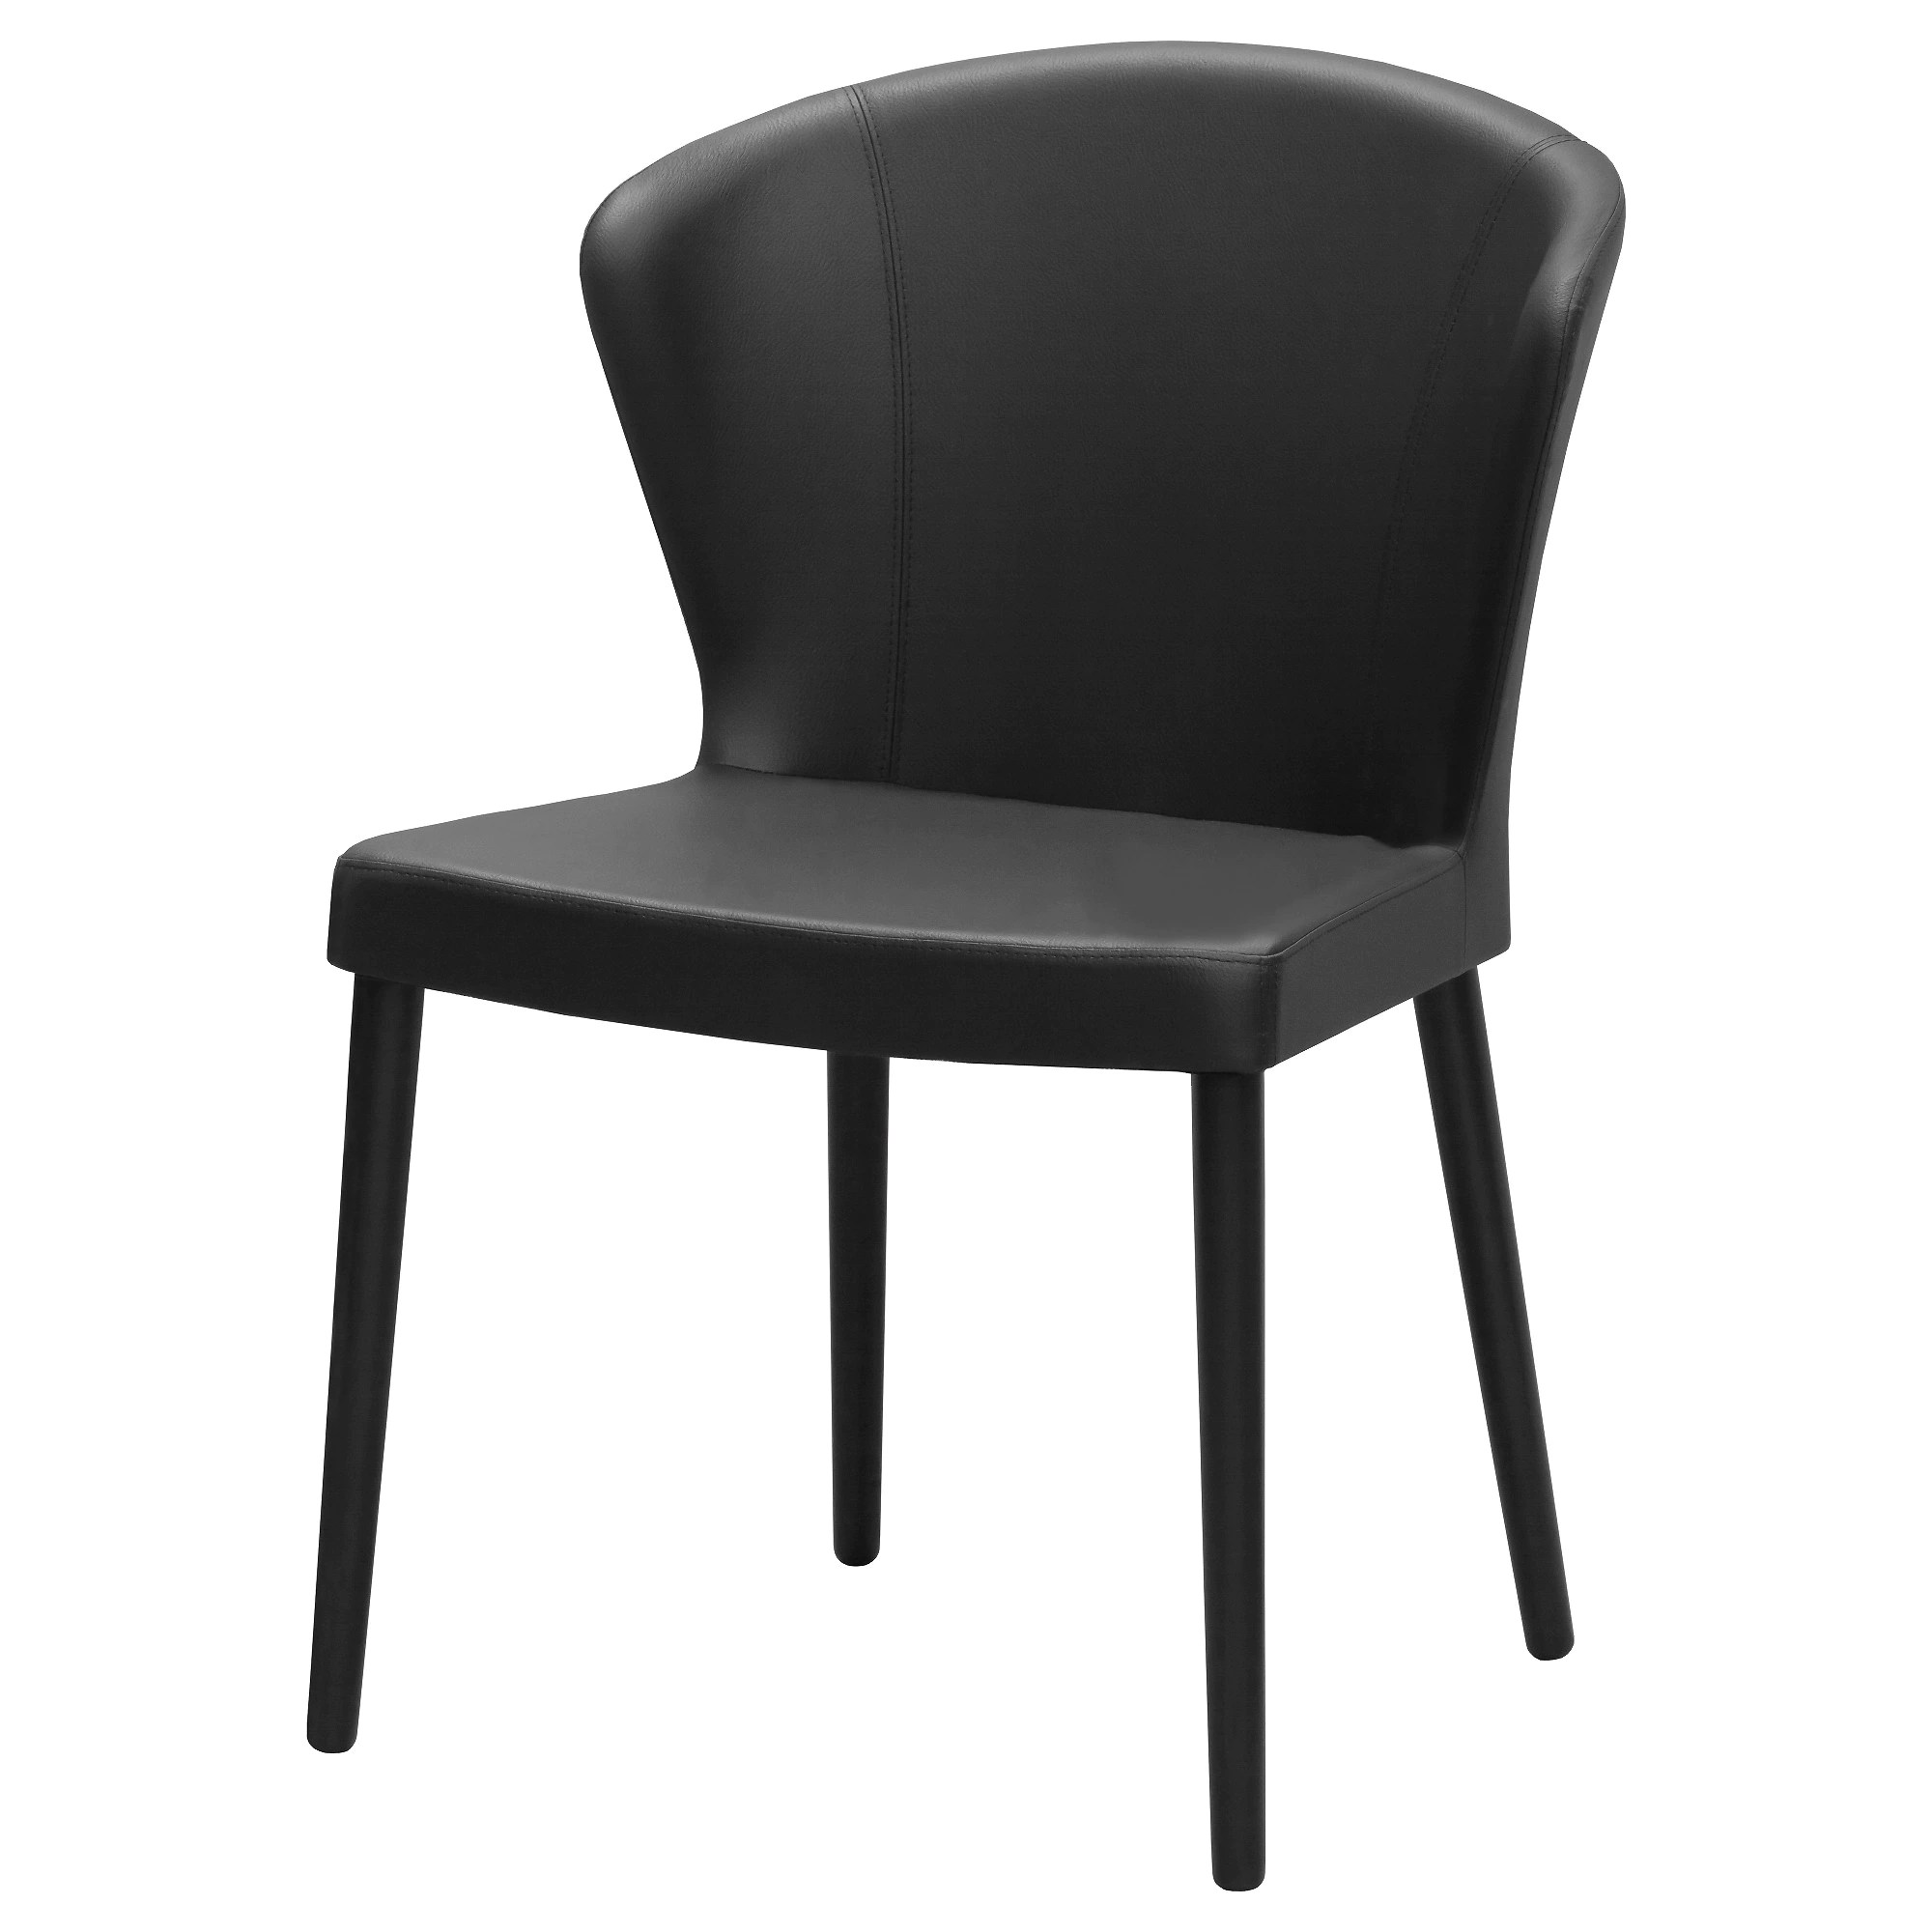 teal kitchen chairs ODDMUND chair Idhult black stained Idhult black Width 22 Depth 18